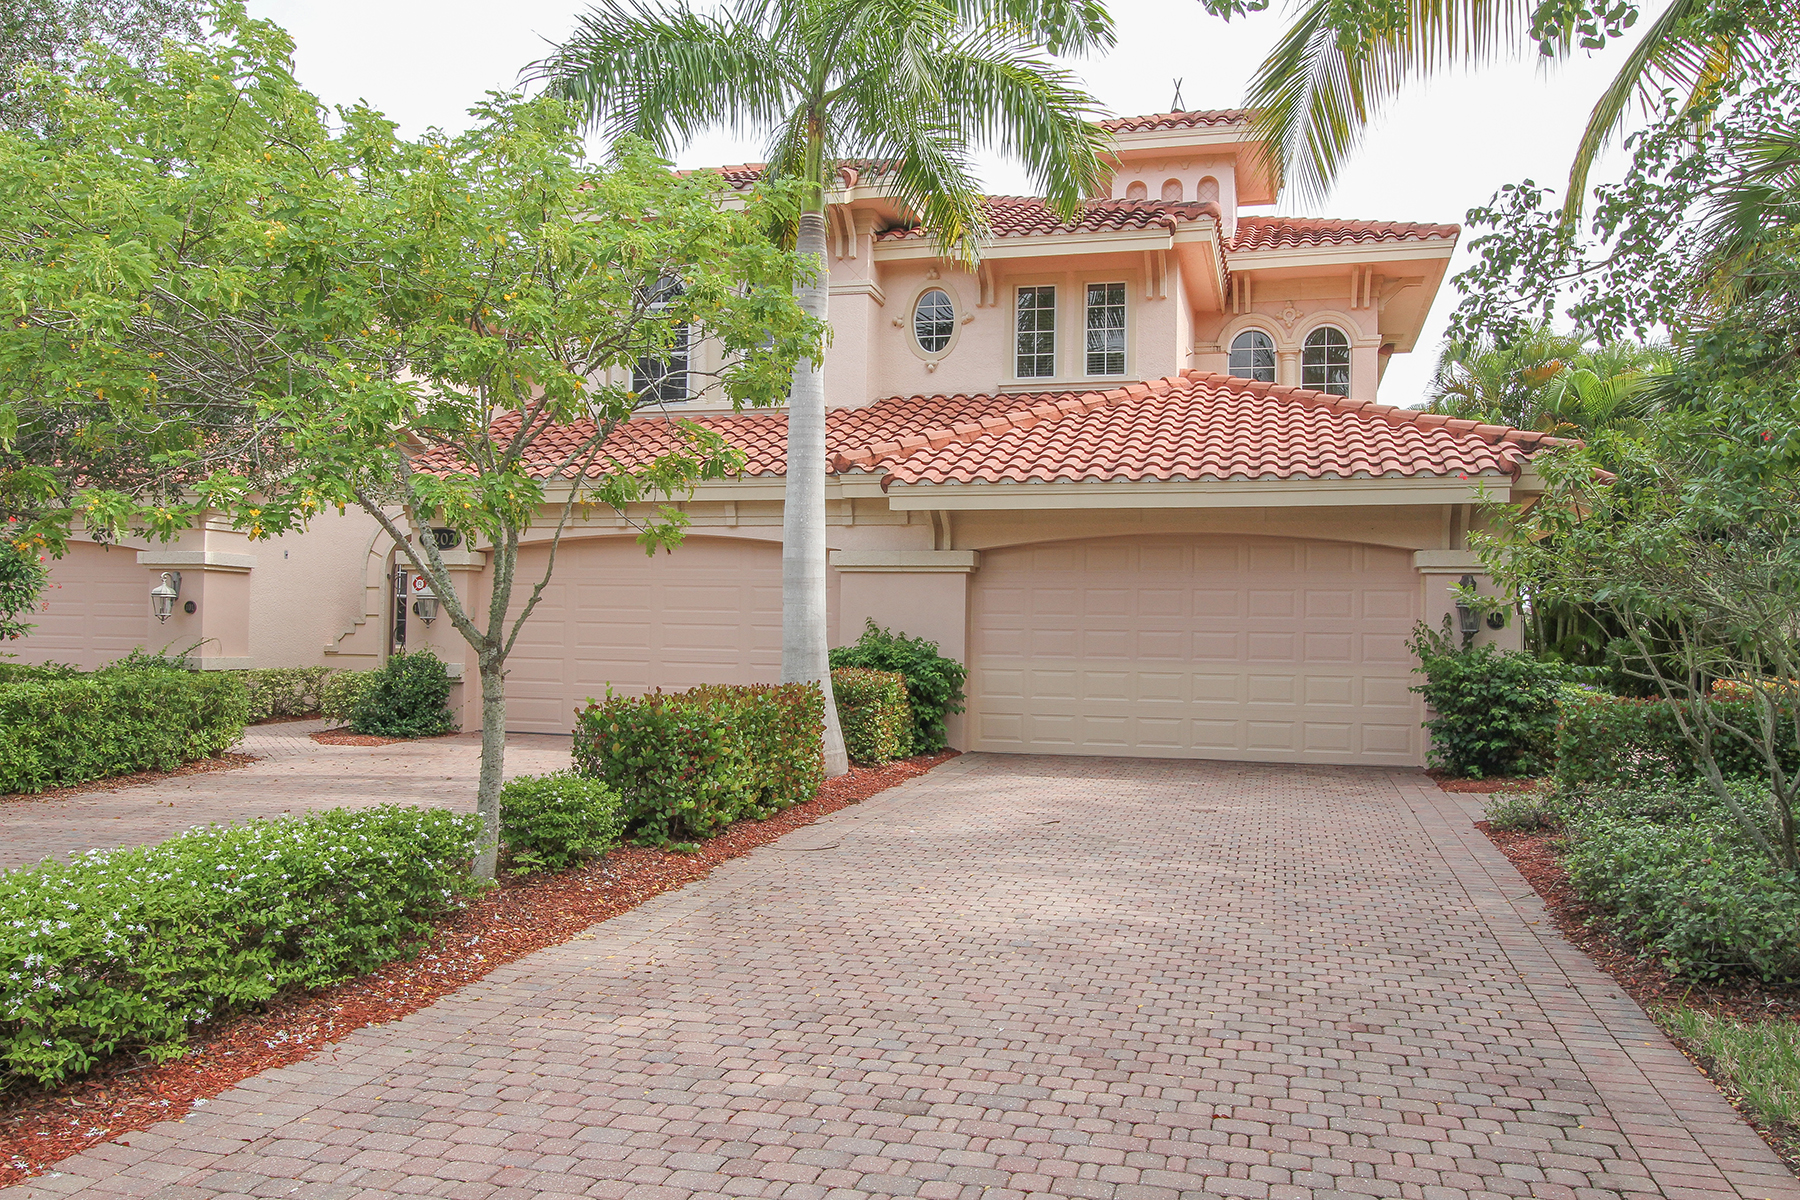 Piso por un Venta en FIDDLER'S CREEK - SERENA 3202 Serenity Ct 202 Naples, Florida, 34114 Estados Unidos